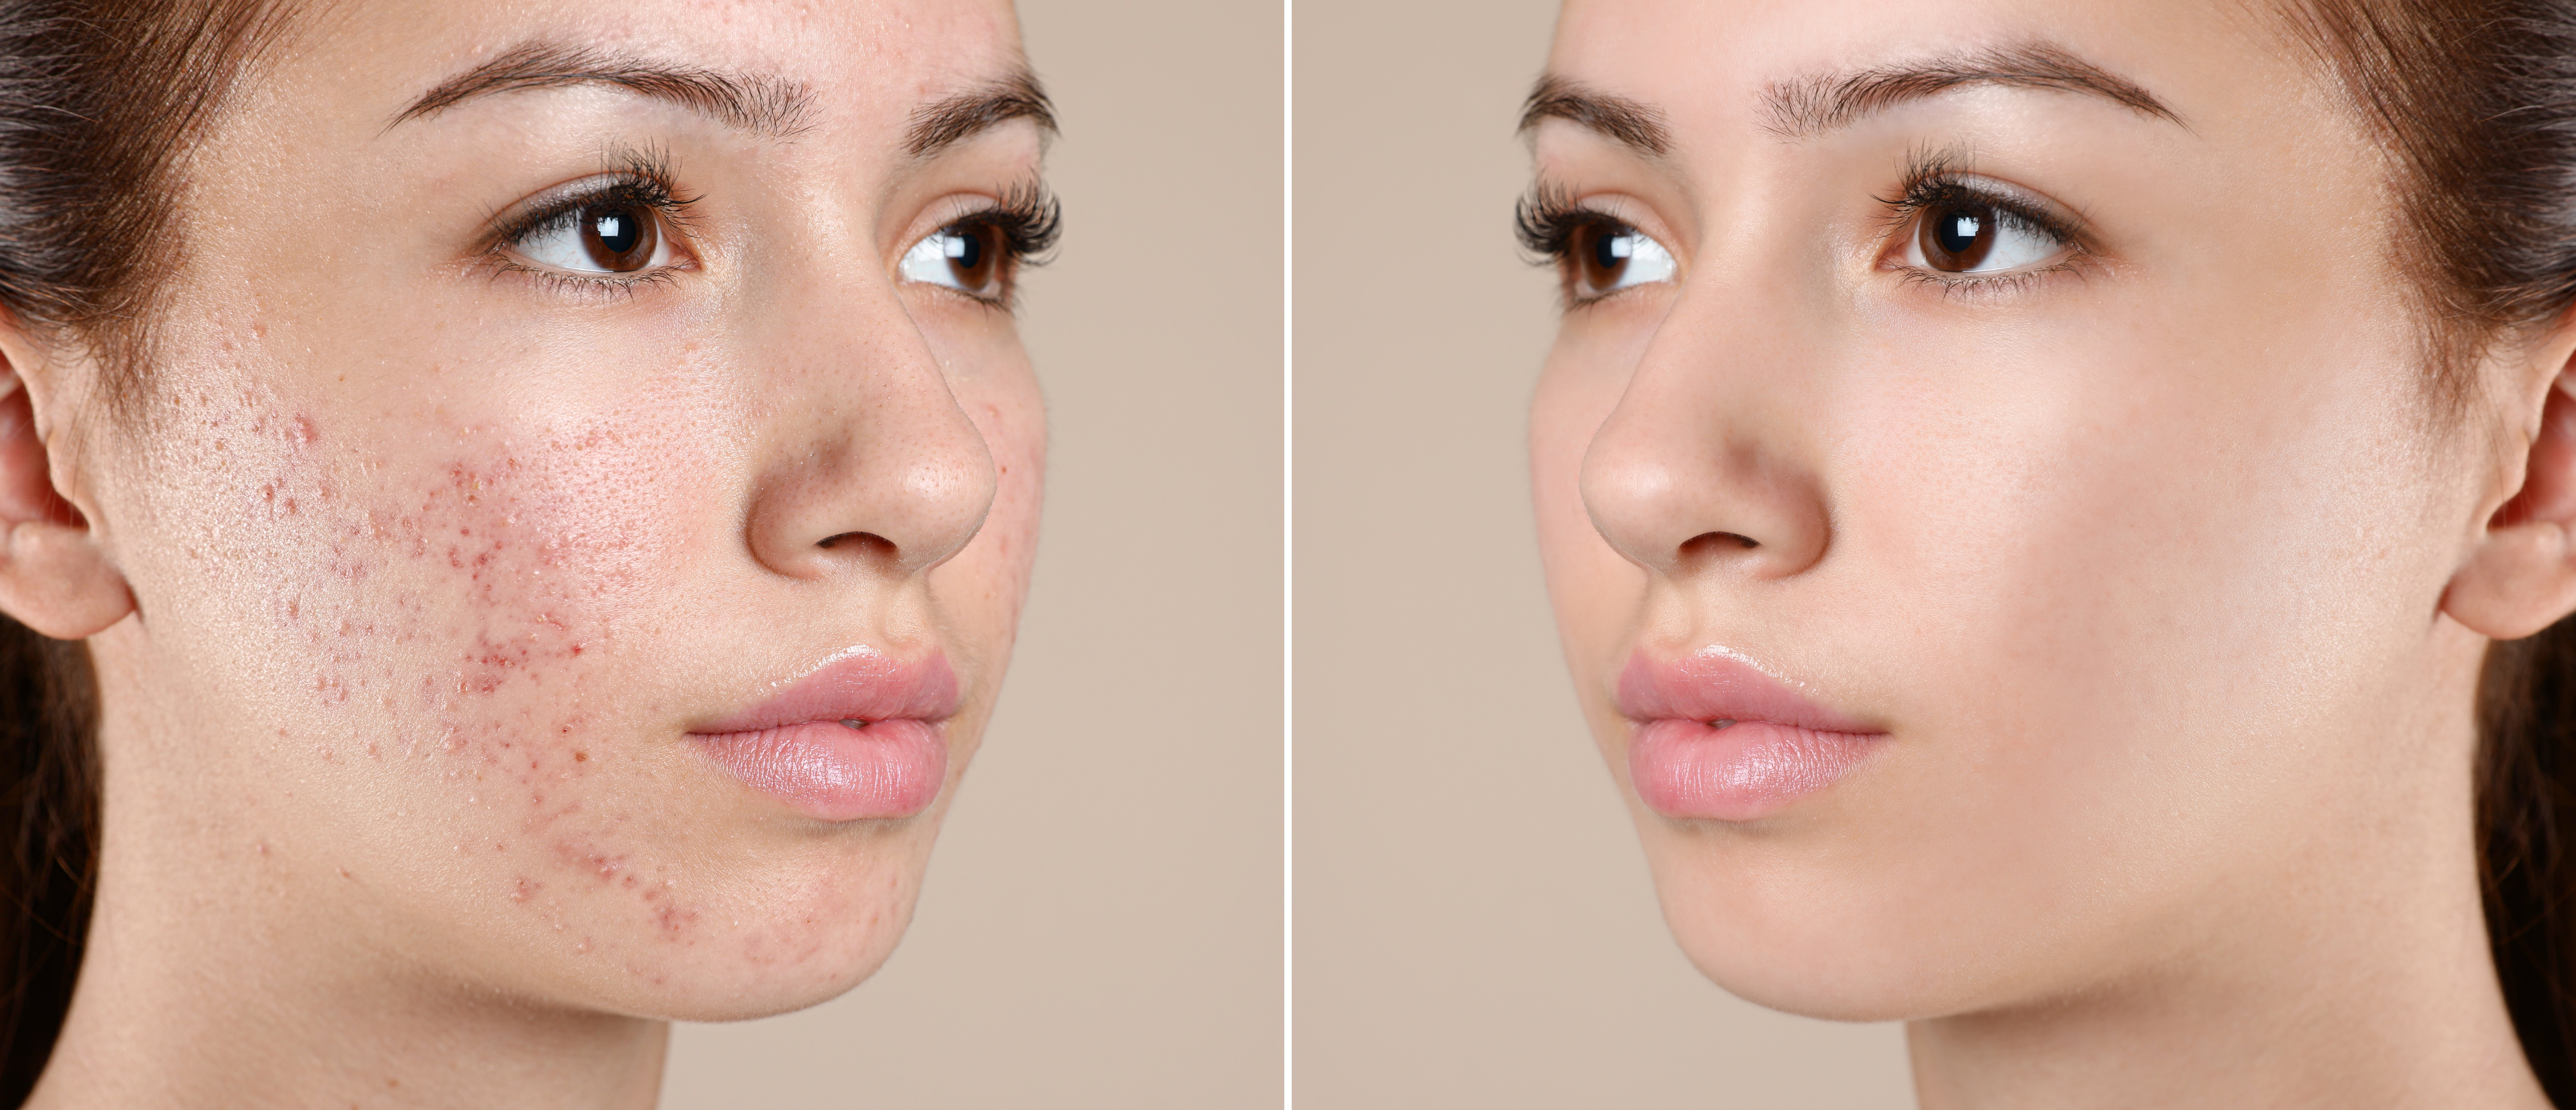 Woman before and after acne treatment | Shutterstock